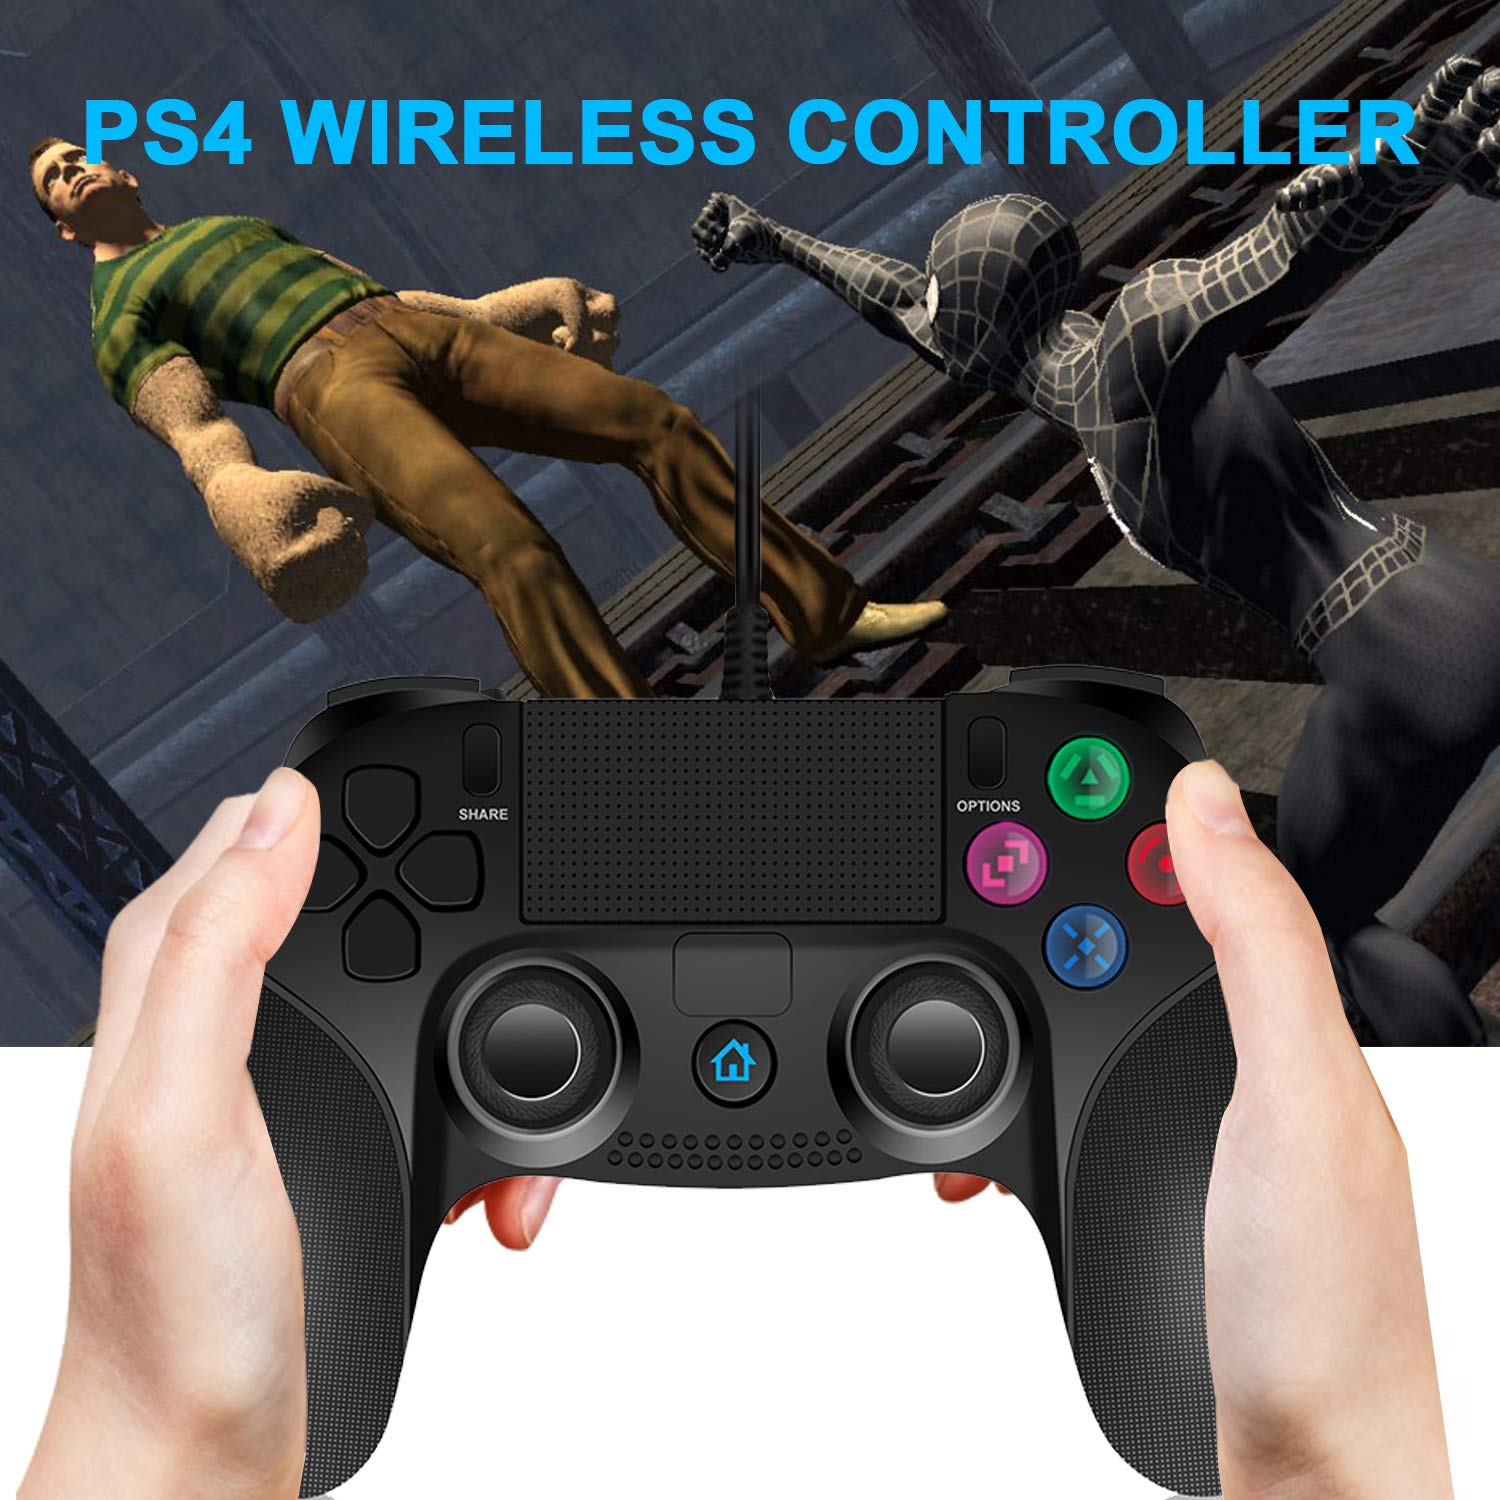 JAMSWALL PS4 Controlador Dual Vibration Shock Joy Stick para Playstation 4 con Cable de 2.2 M: Amazon.es: Electrónica